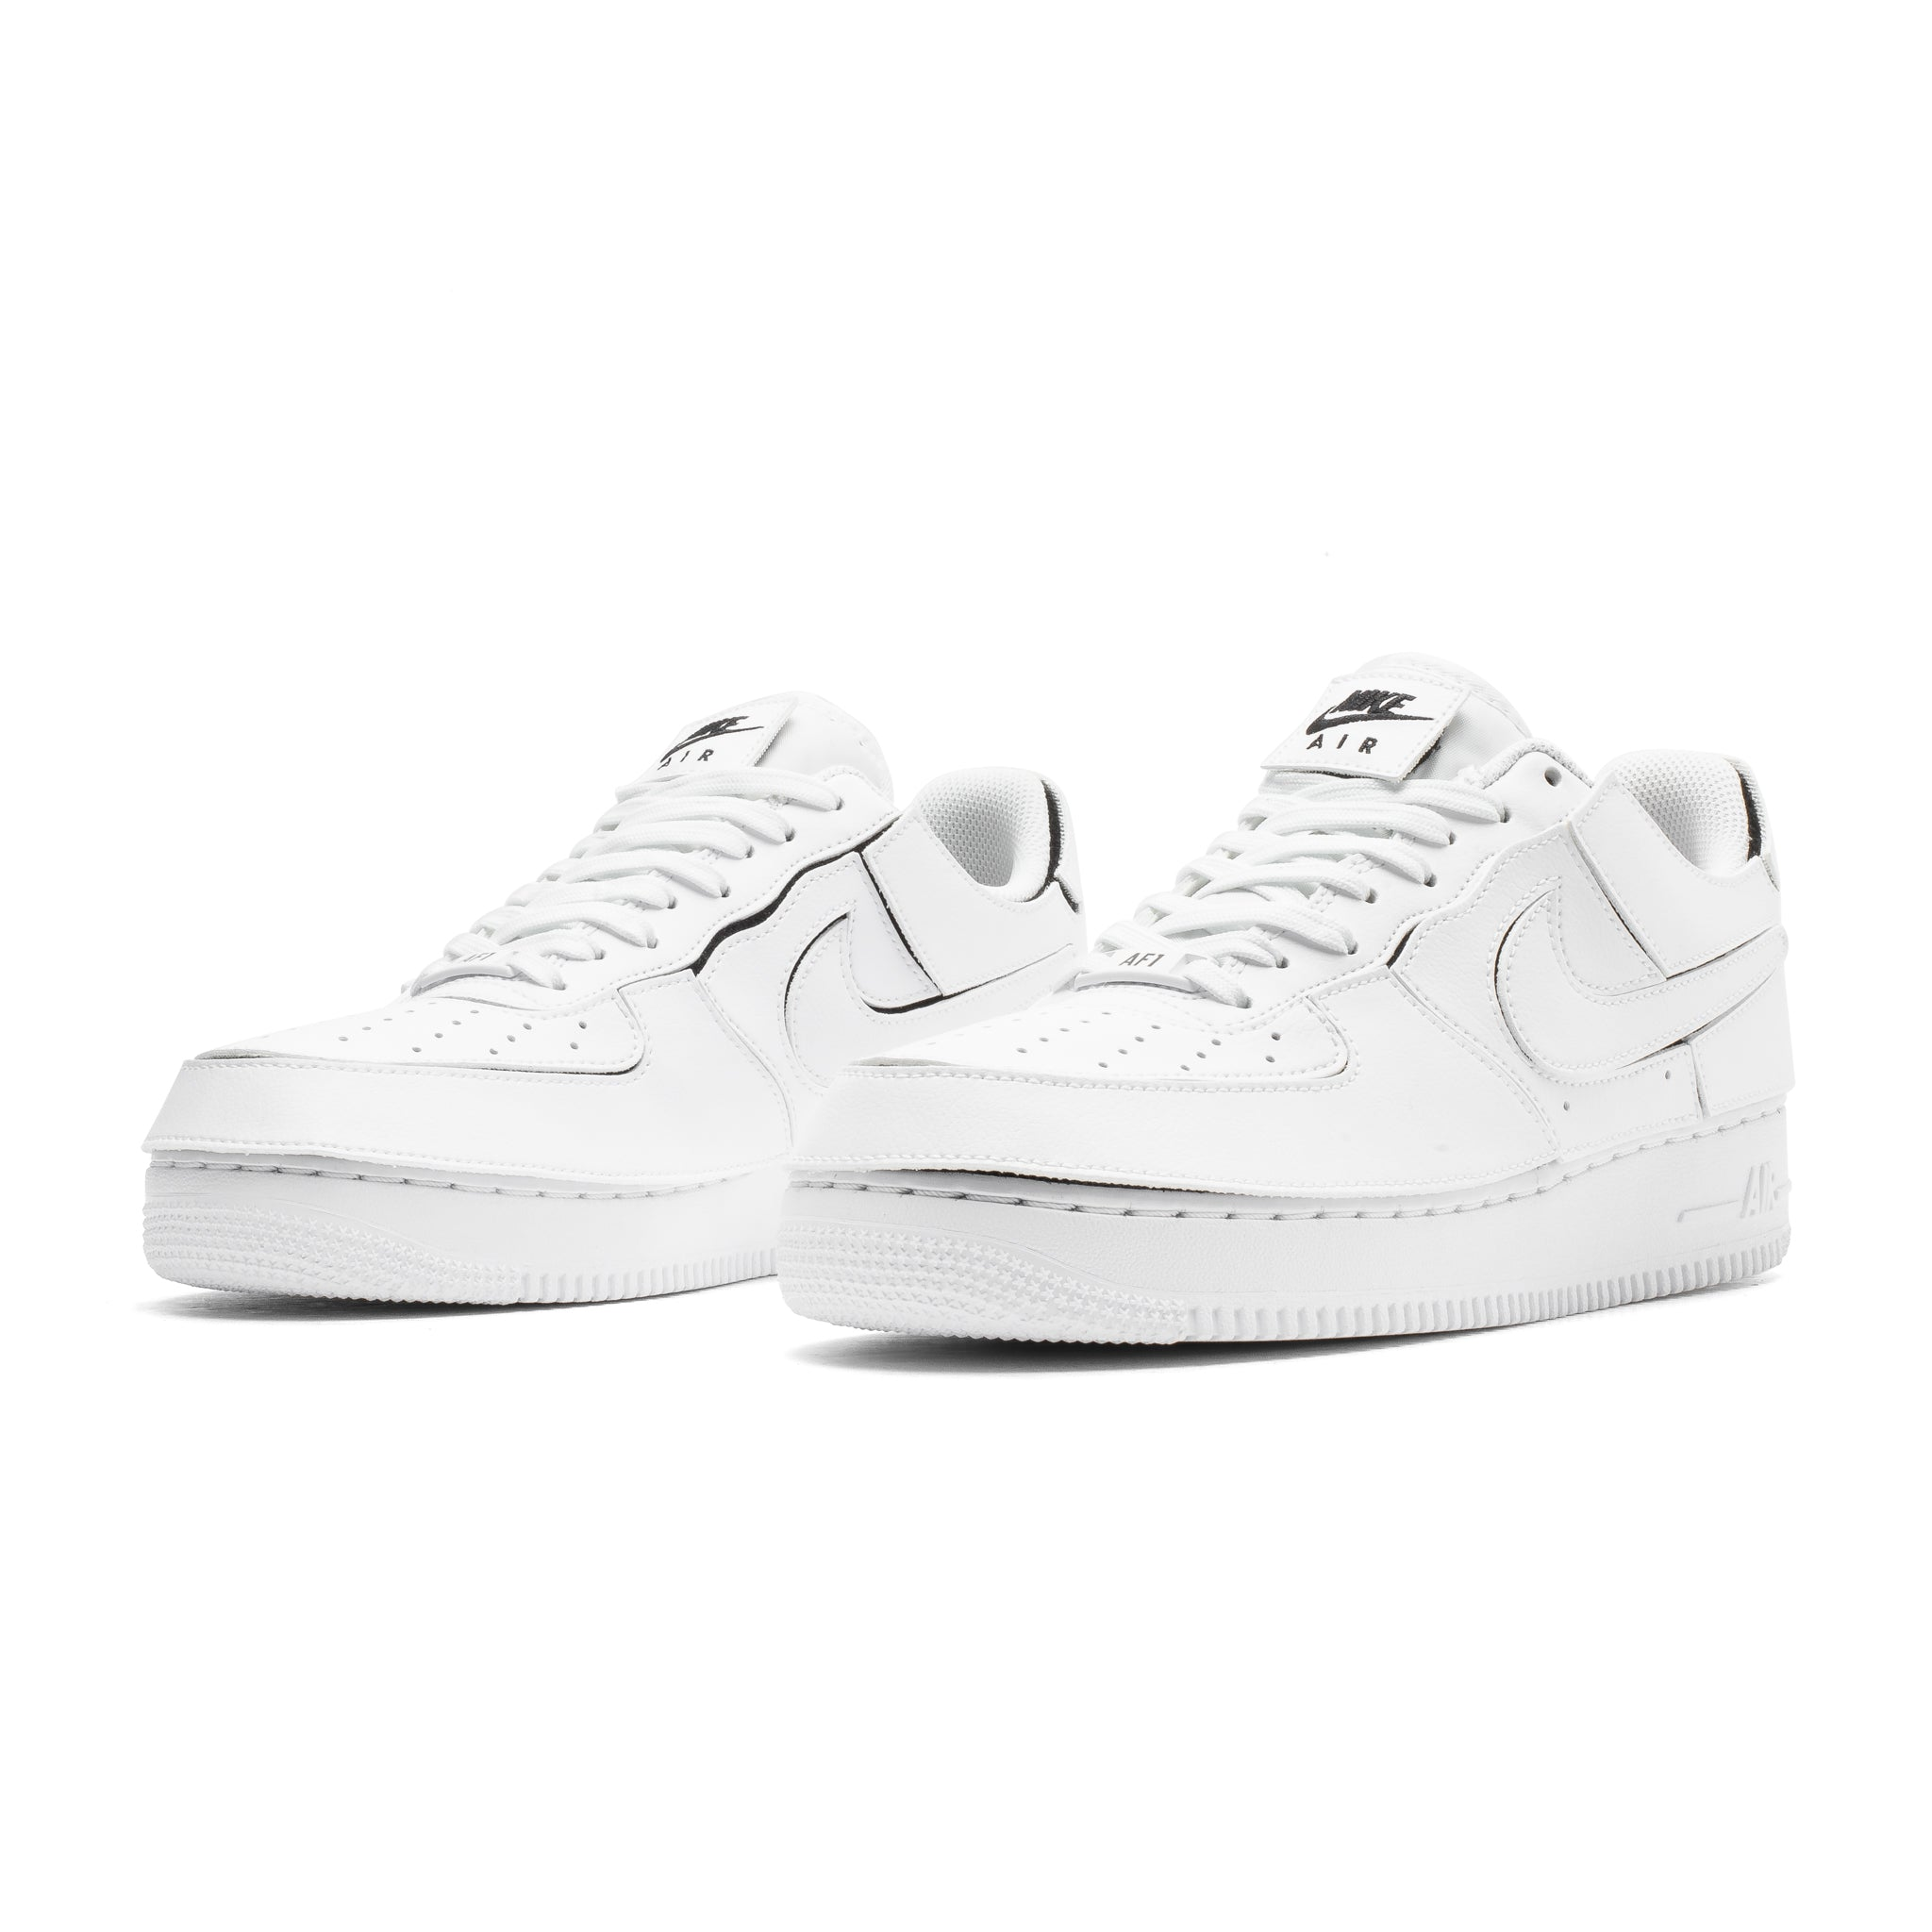 AF1/1 CZ5093-100 White/White-Black-Cosmic Clay